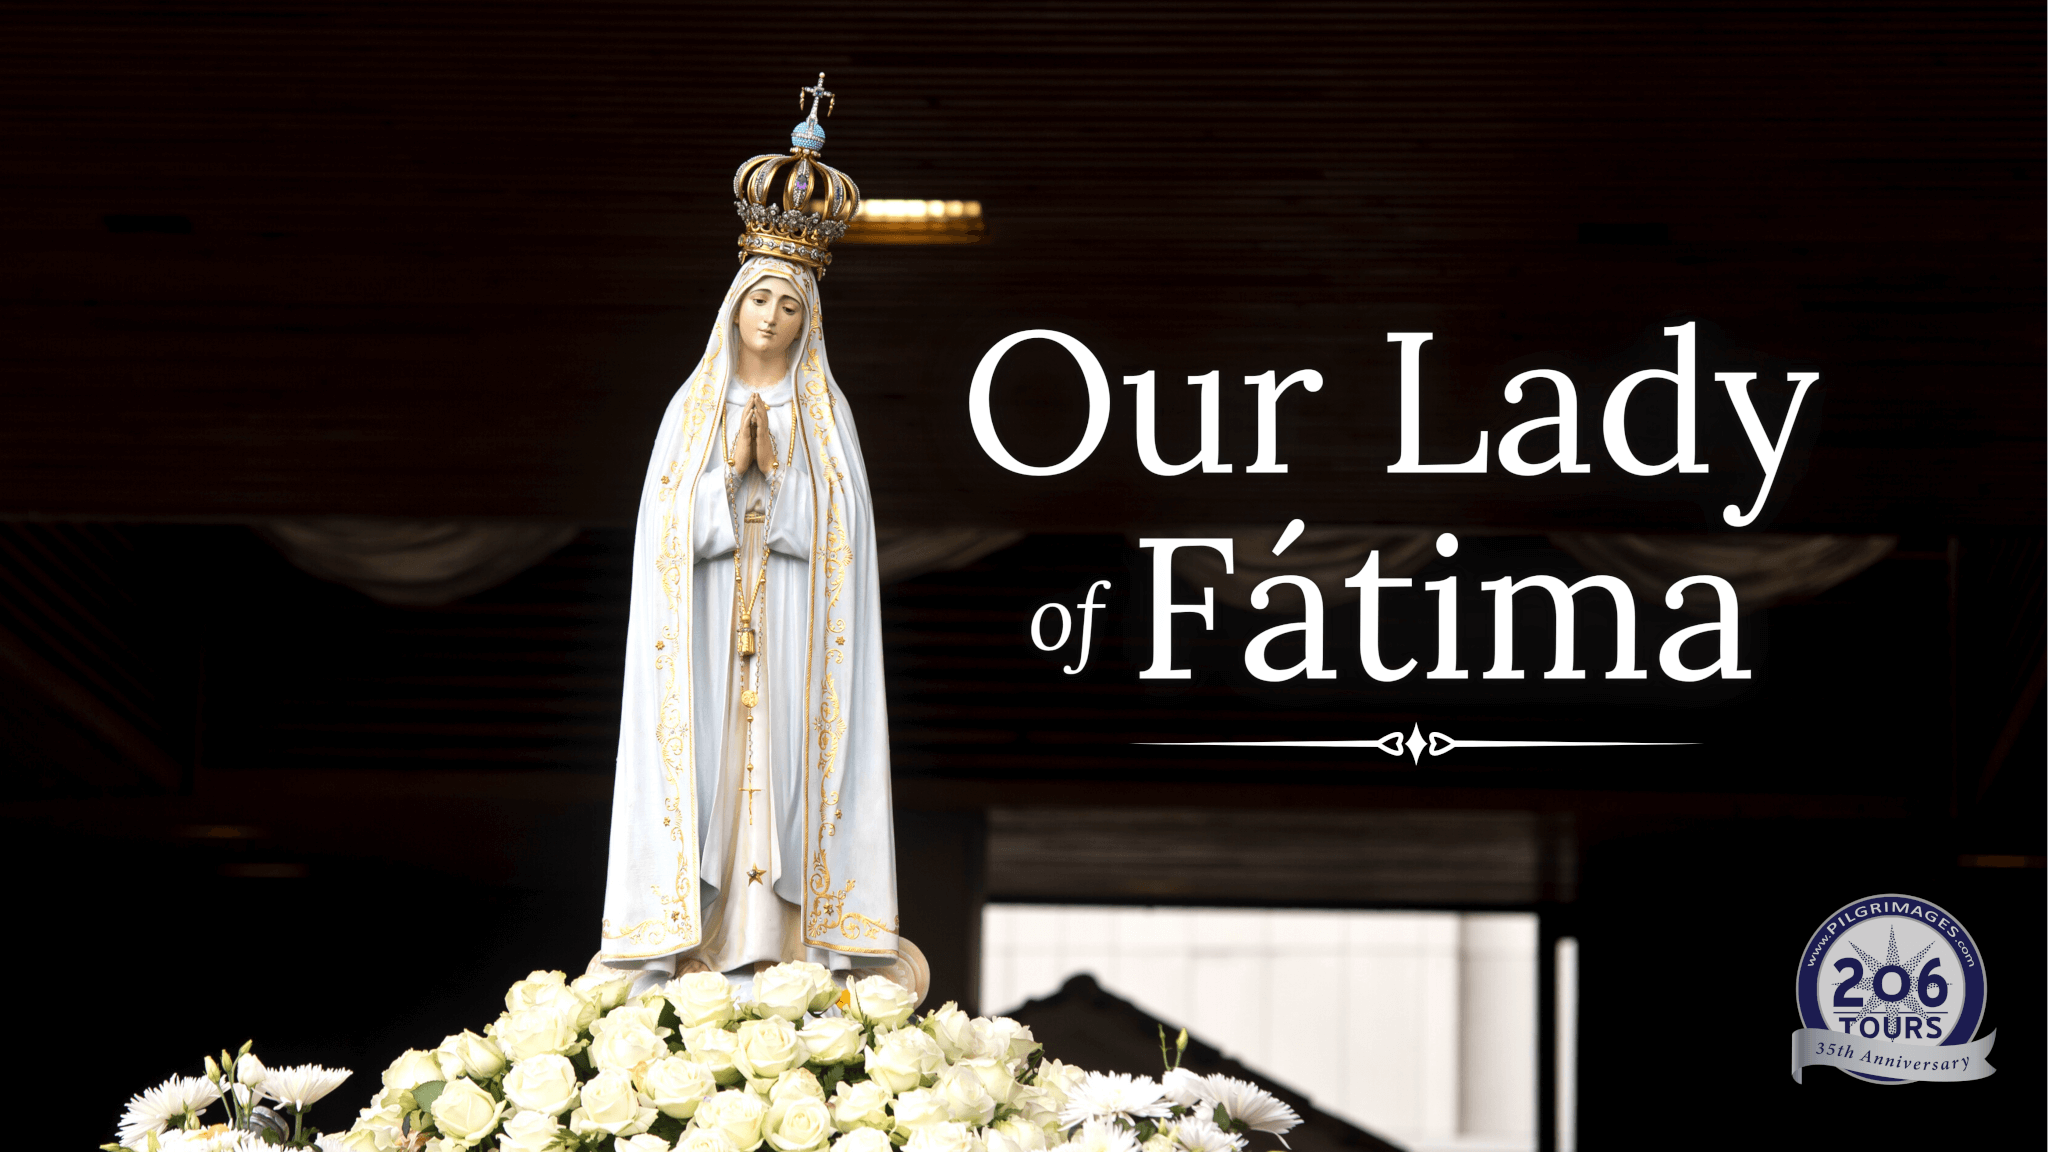 Our Lady of Fatima Portugal Pilgrimage 206 Tours